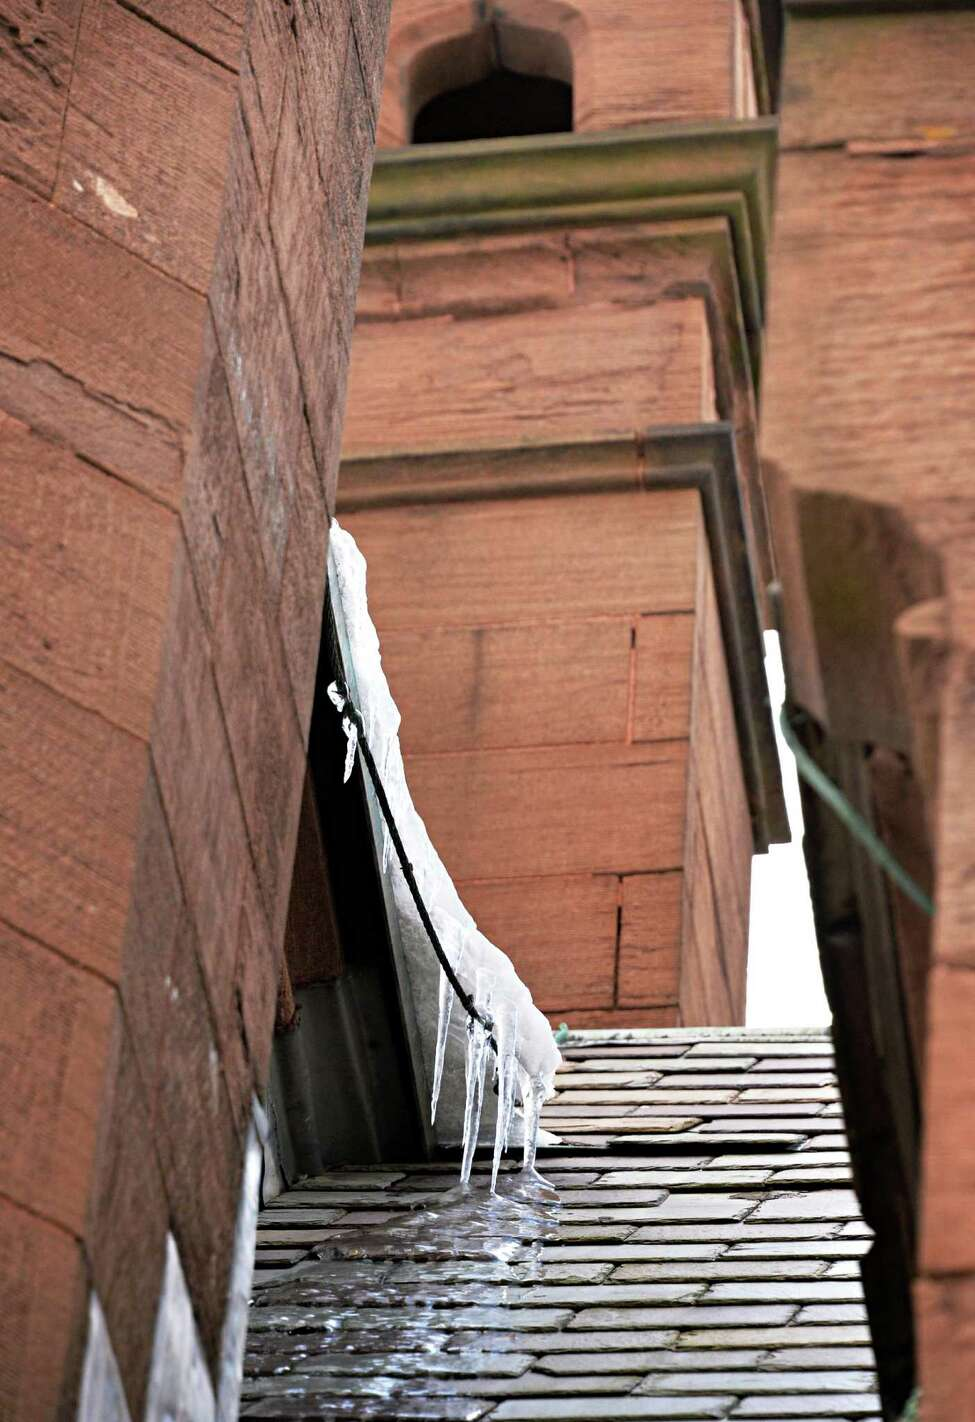 Some ice is visible on the roof of the Cathedral of the Immaculate Conception Tuesday, Feb. 25, 2014, in Albany, N.Y. (John Carl D'Annibale / Times Union)